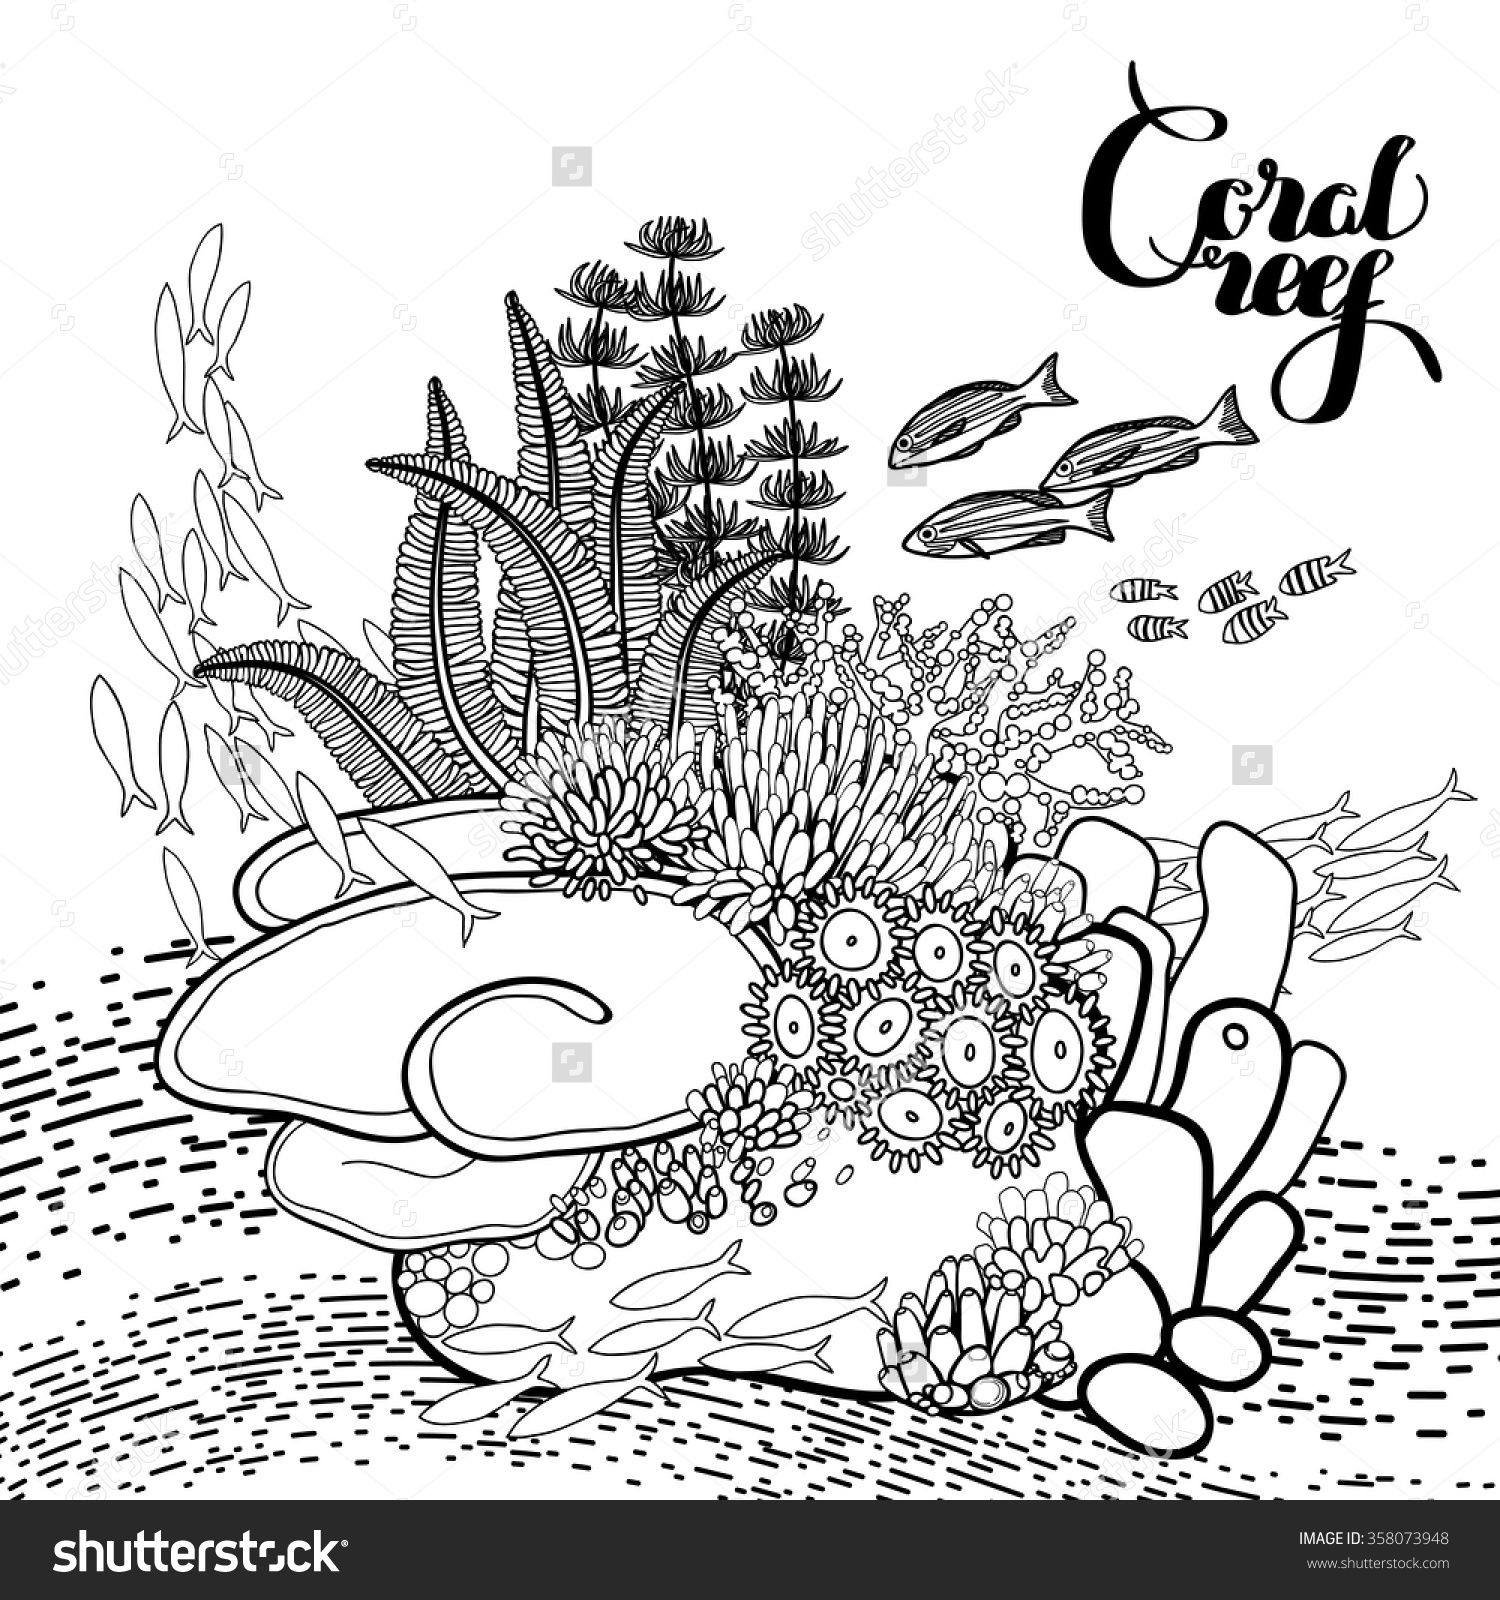 ocean plants coloring pages google image result for httpwwwenchantedlearningcom coloring pages ocean plants